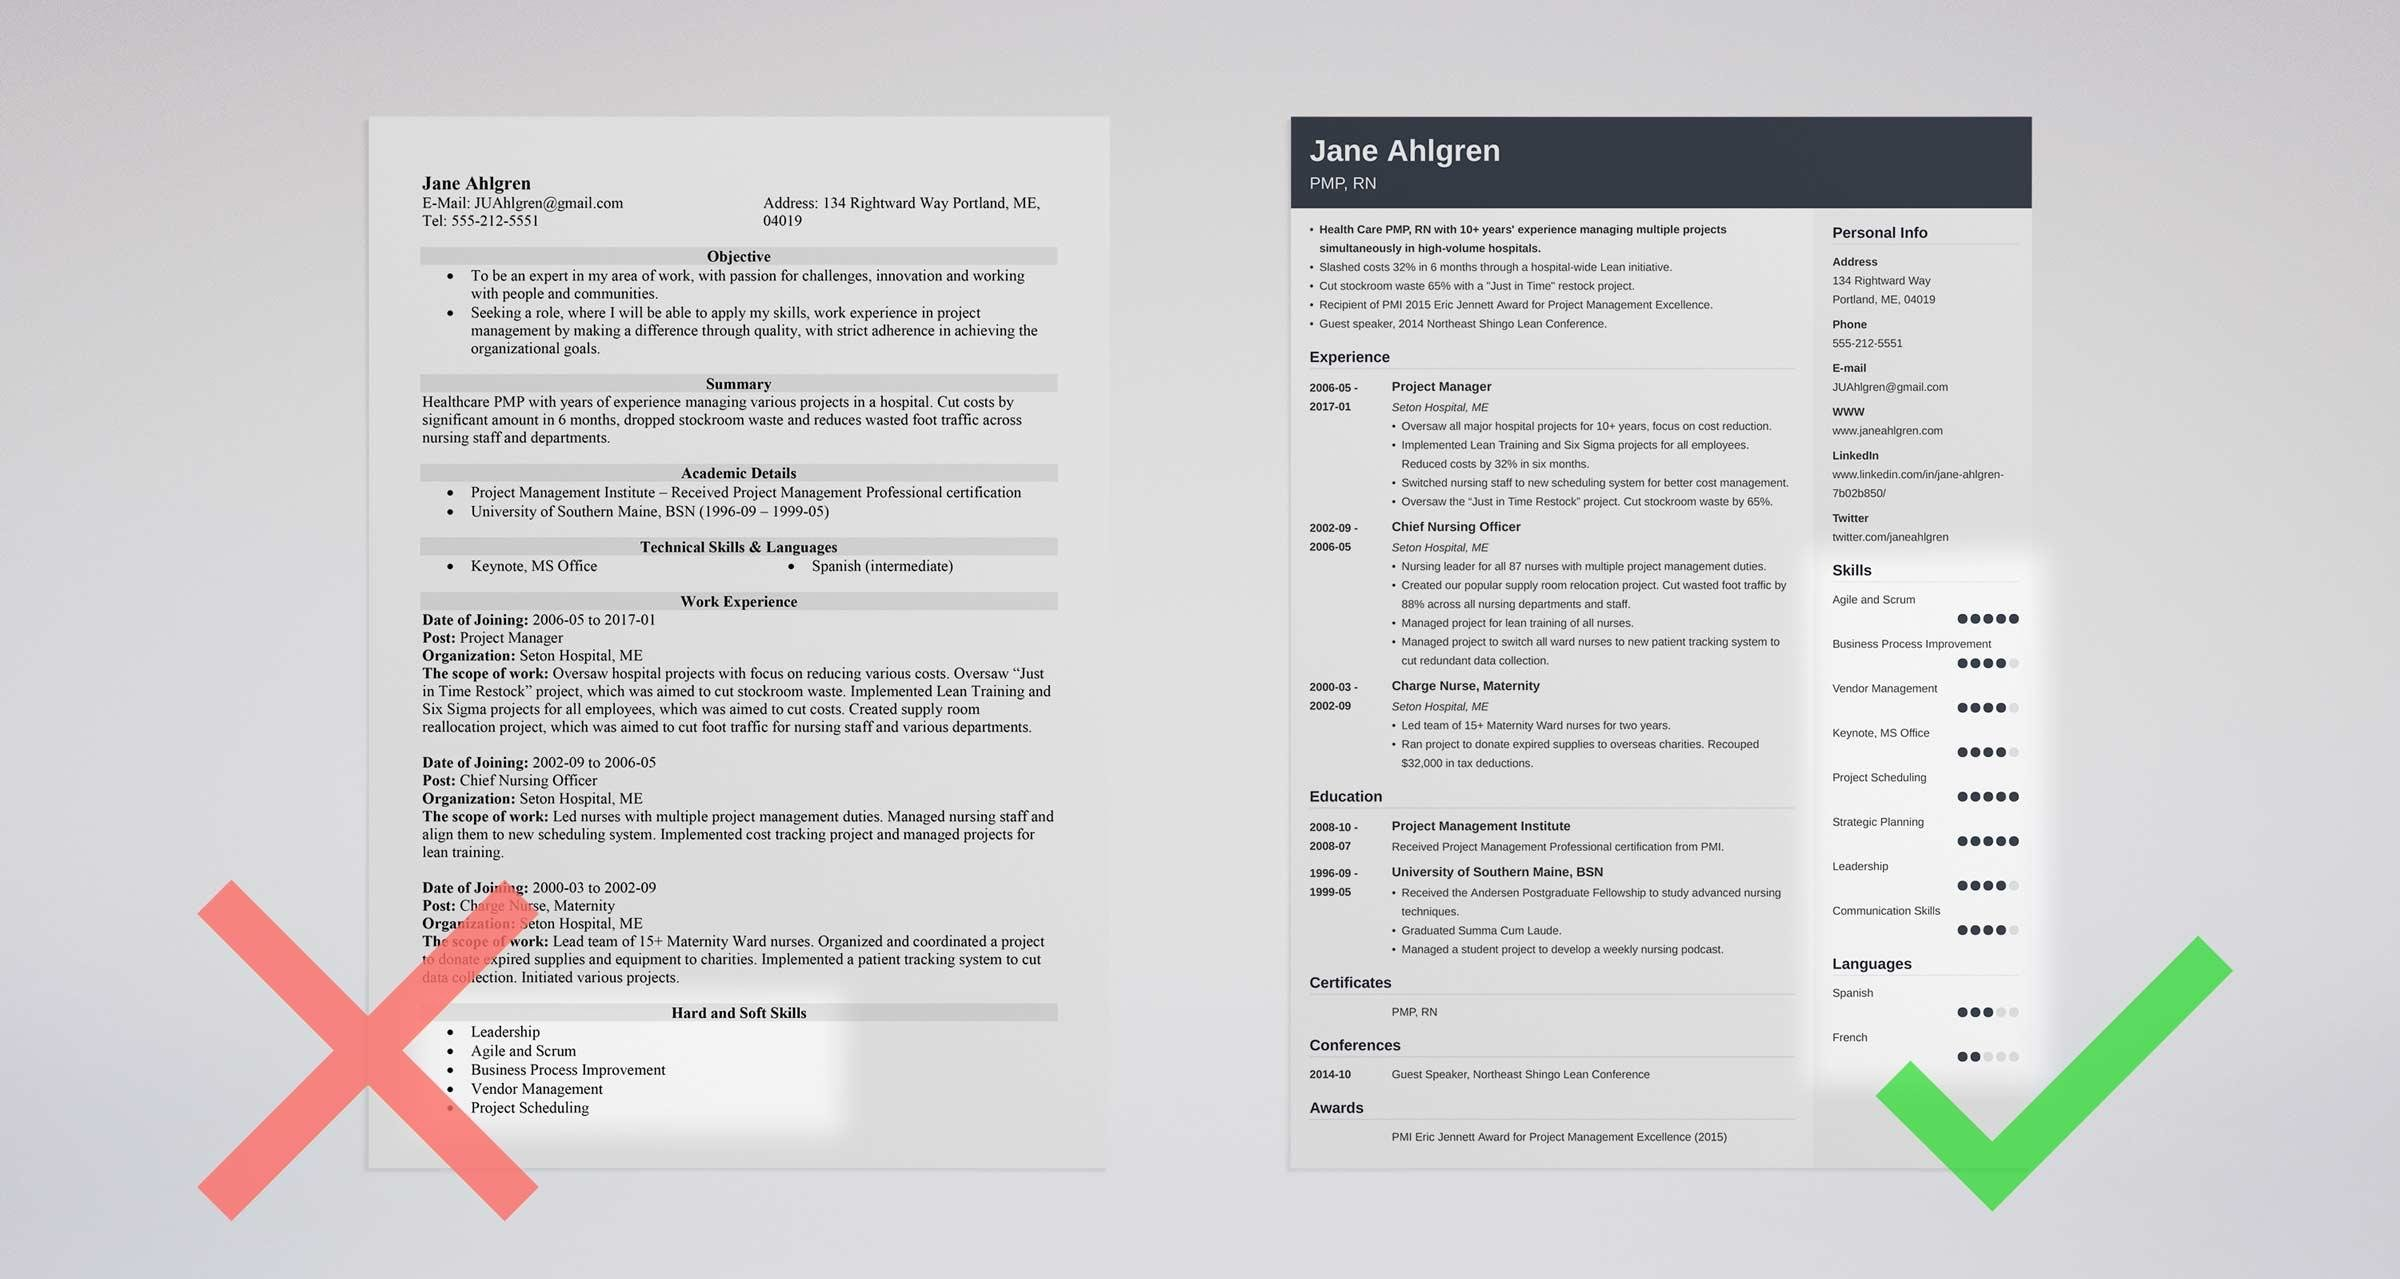 99 Key Skills For A Resume Best List Of Examples All Types Jobs